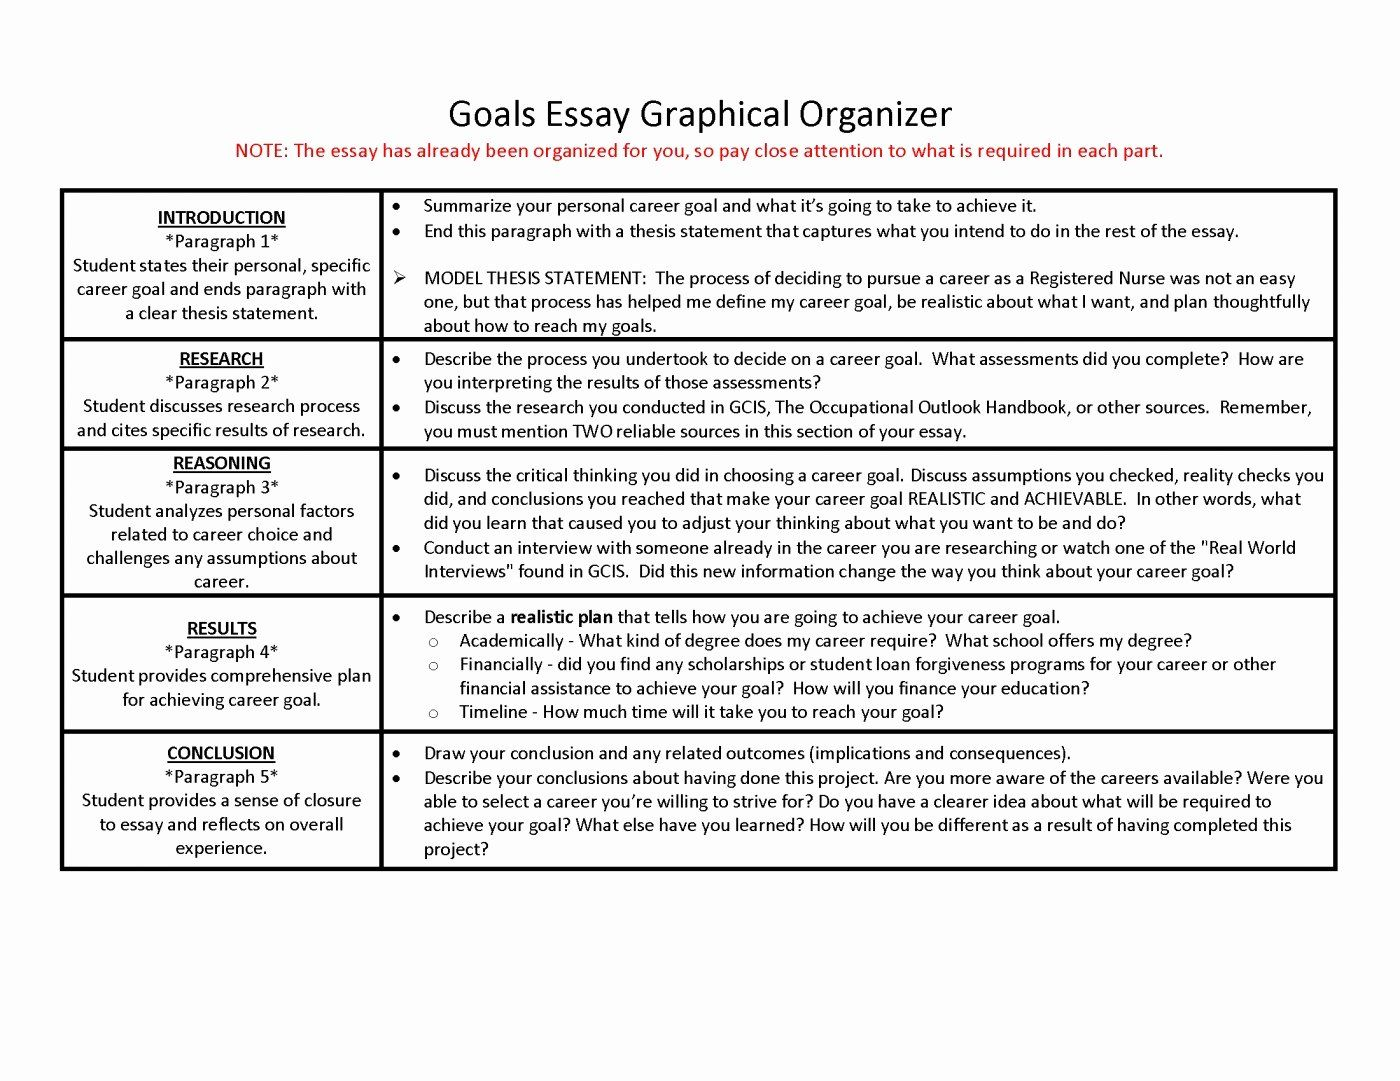 Statement Of Academic Goal Example Best 023 Career Zdxttkpg Educational And Essay Scholarship On Goals